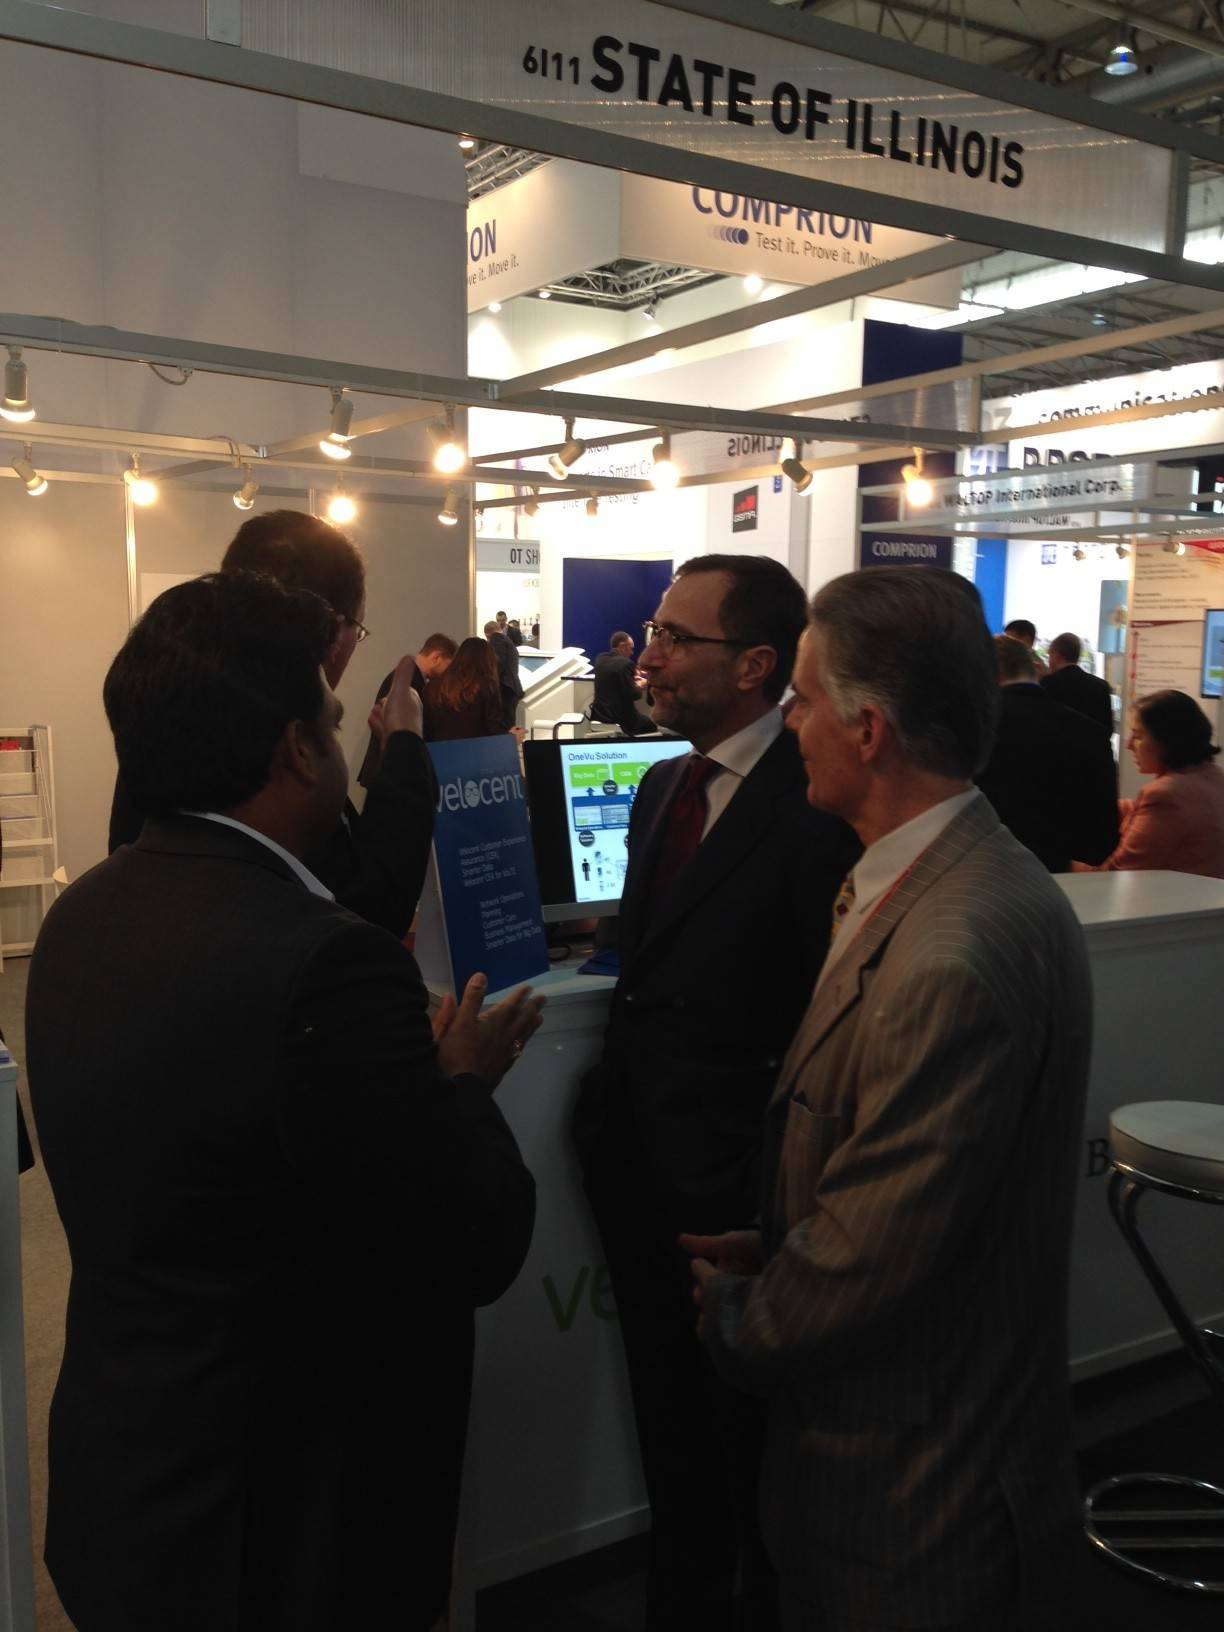 Velocent Systems Inc. of Naperville had an exhibit booth at the Mobile World Congress this week in Barcelona, Spain.